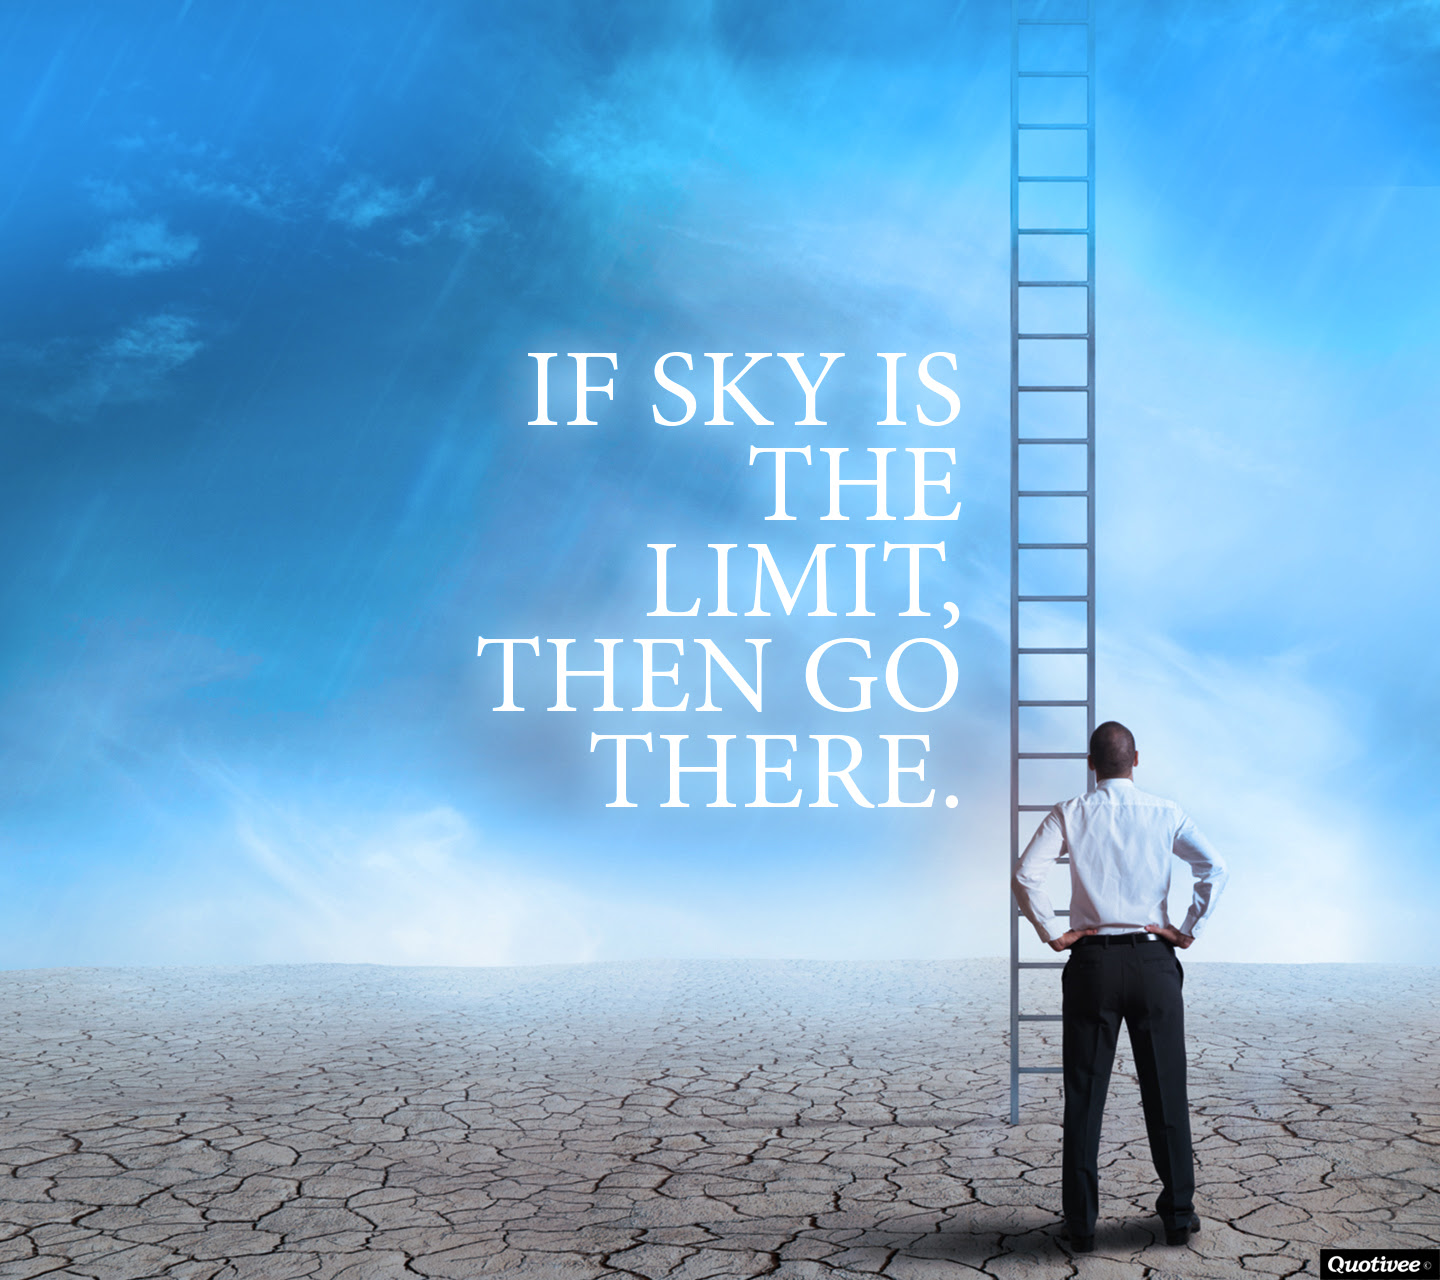 If Sky Is The Limit Inspirational Quotes Quotivee